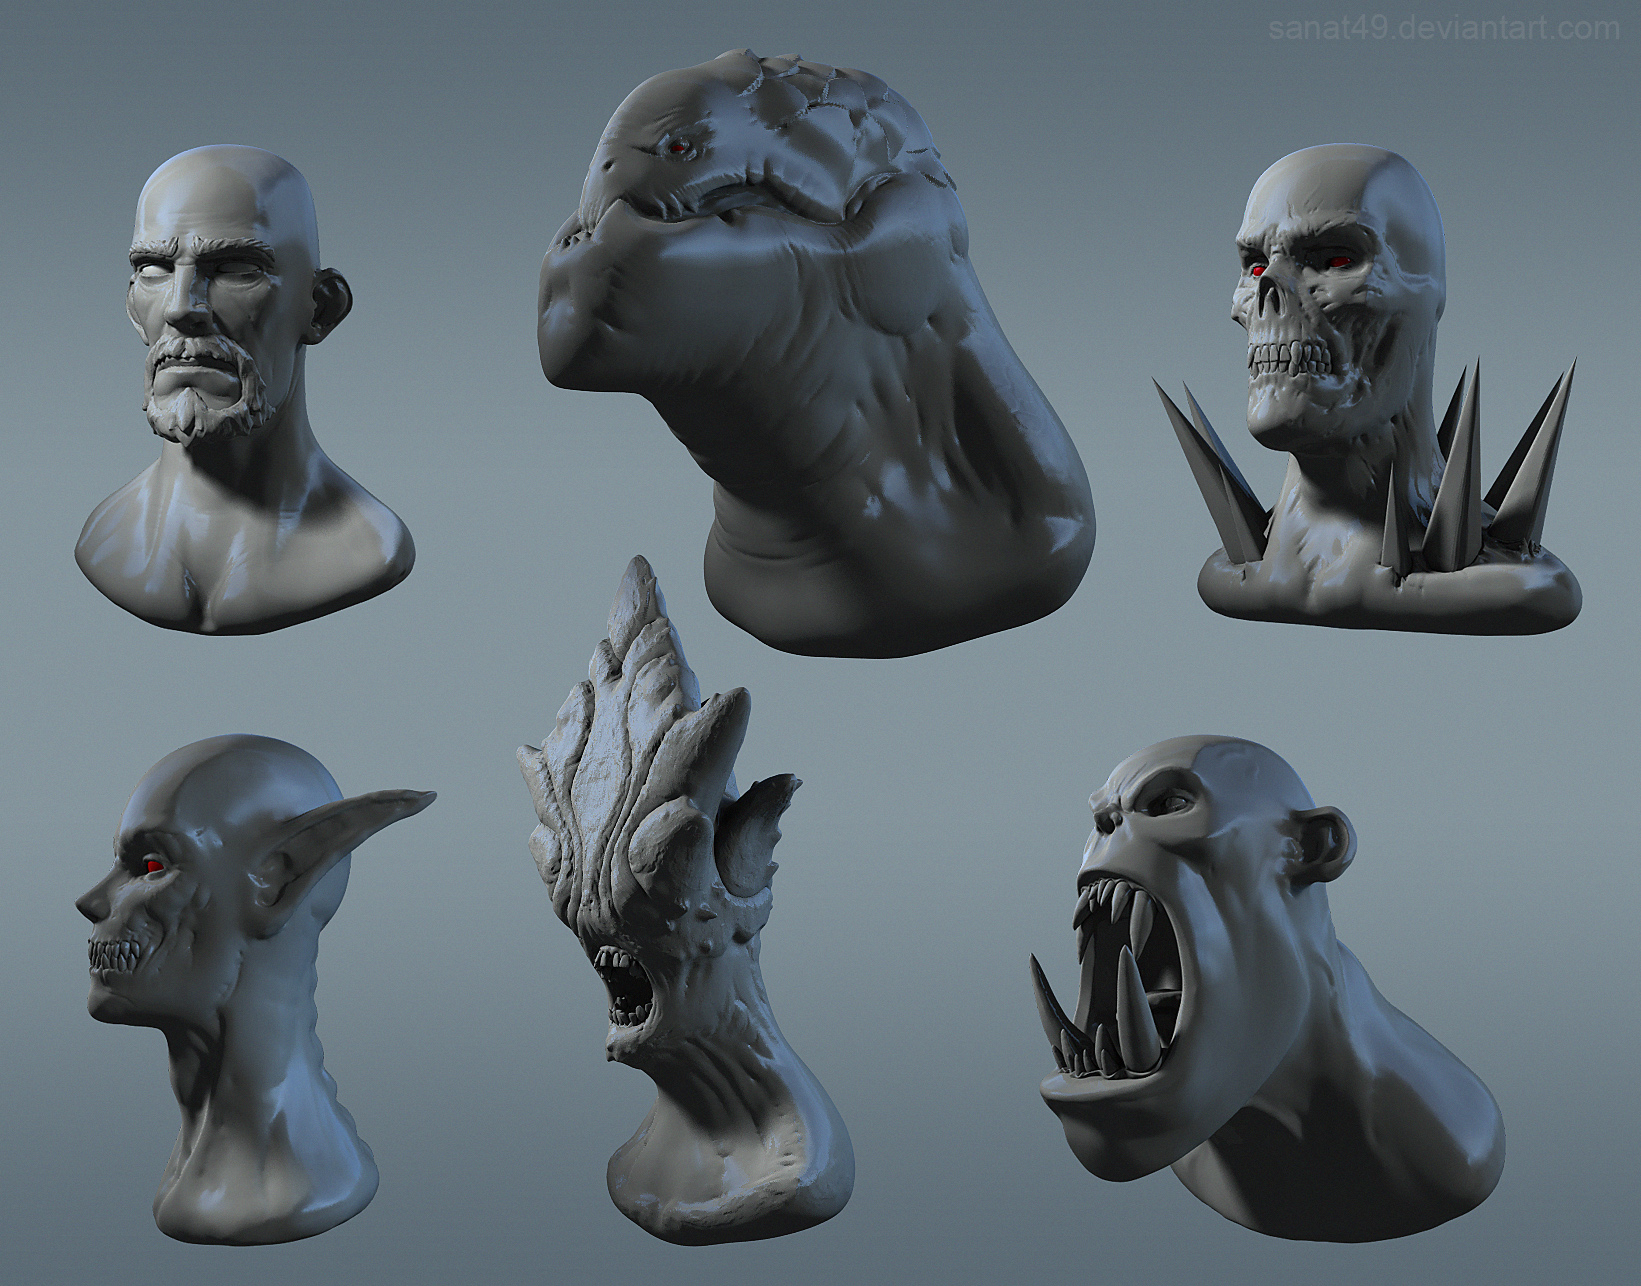 Heads_sculpting_01 by sanat49